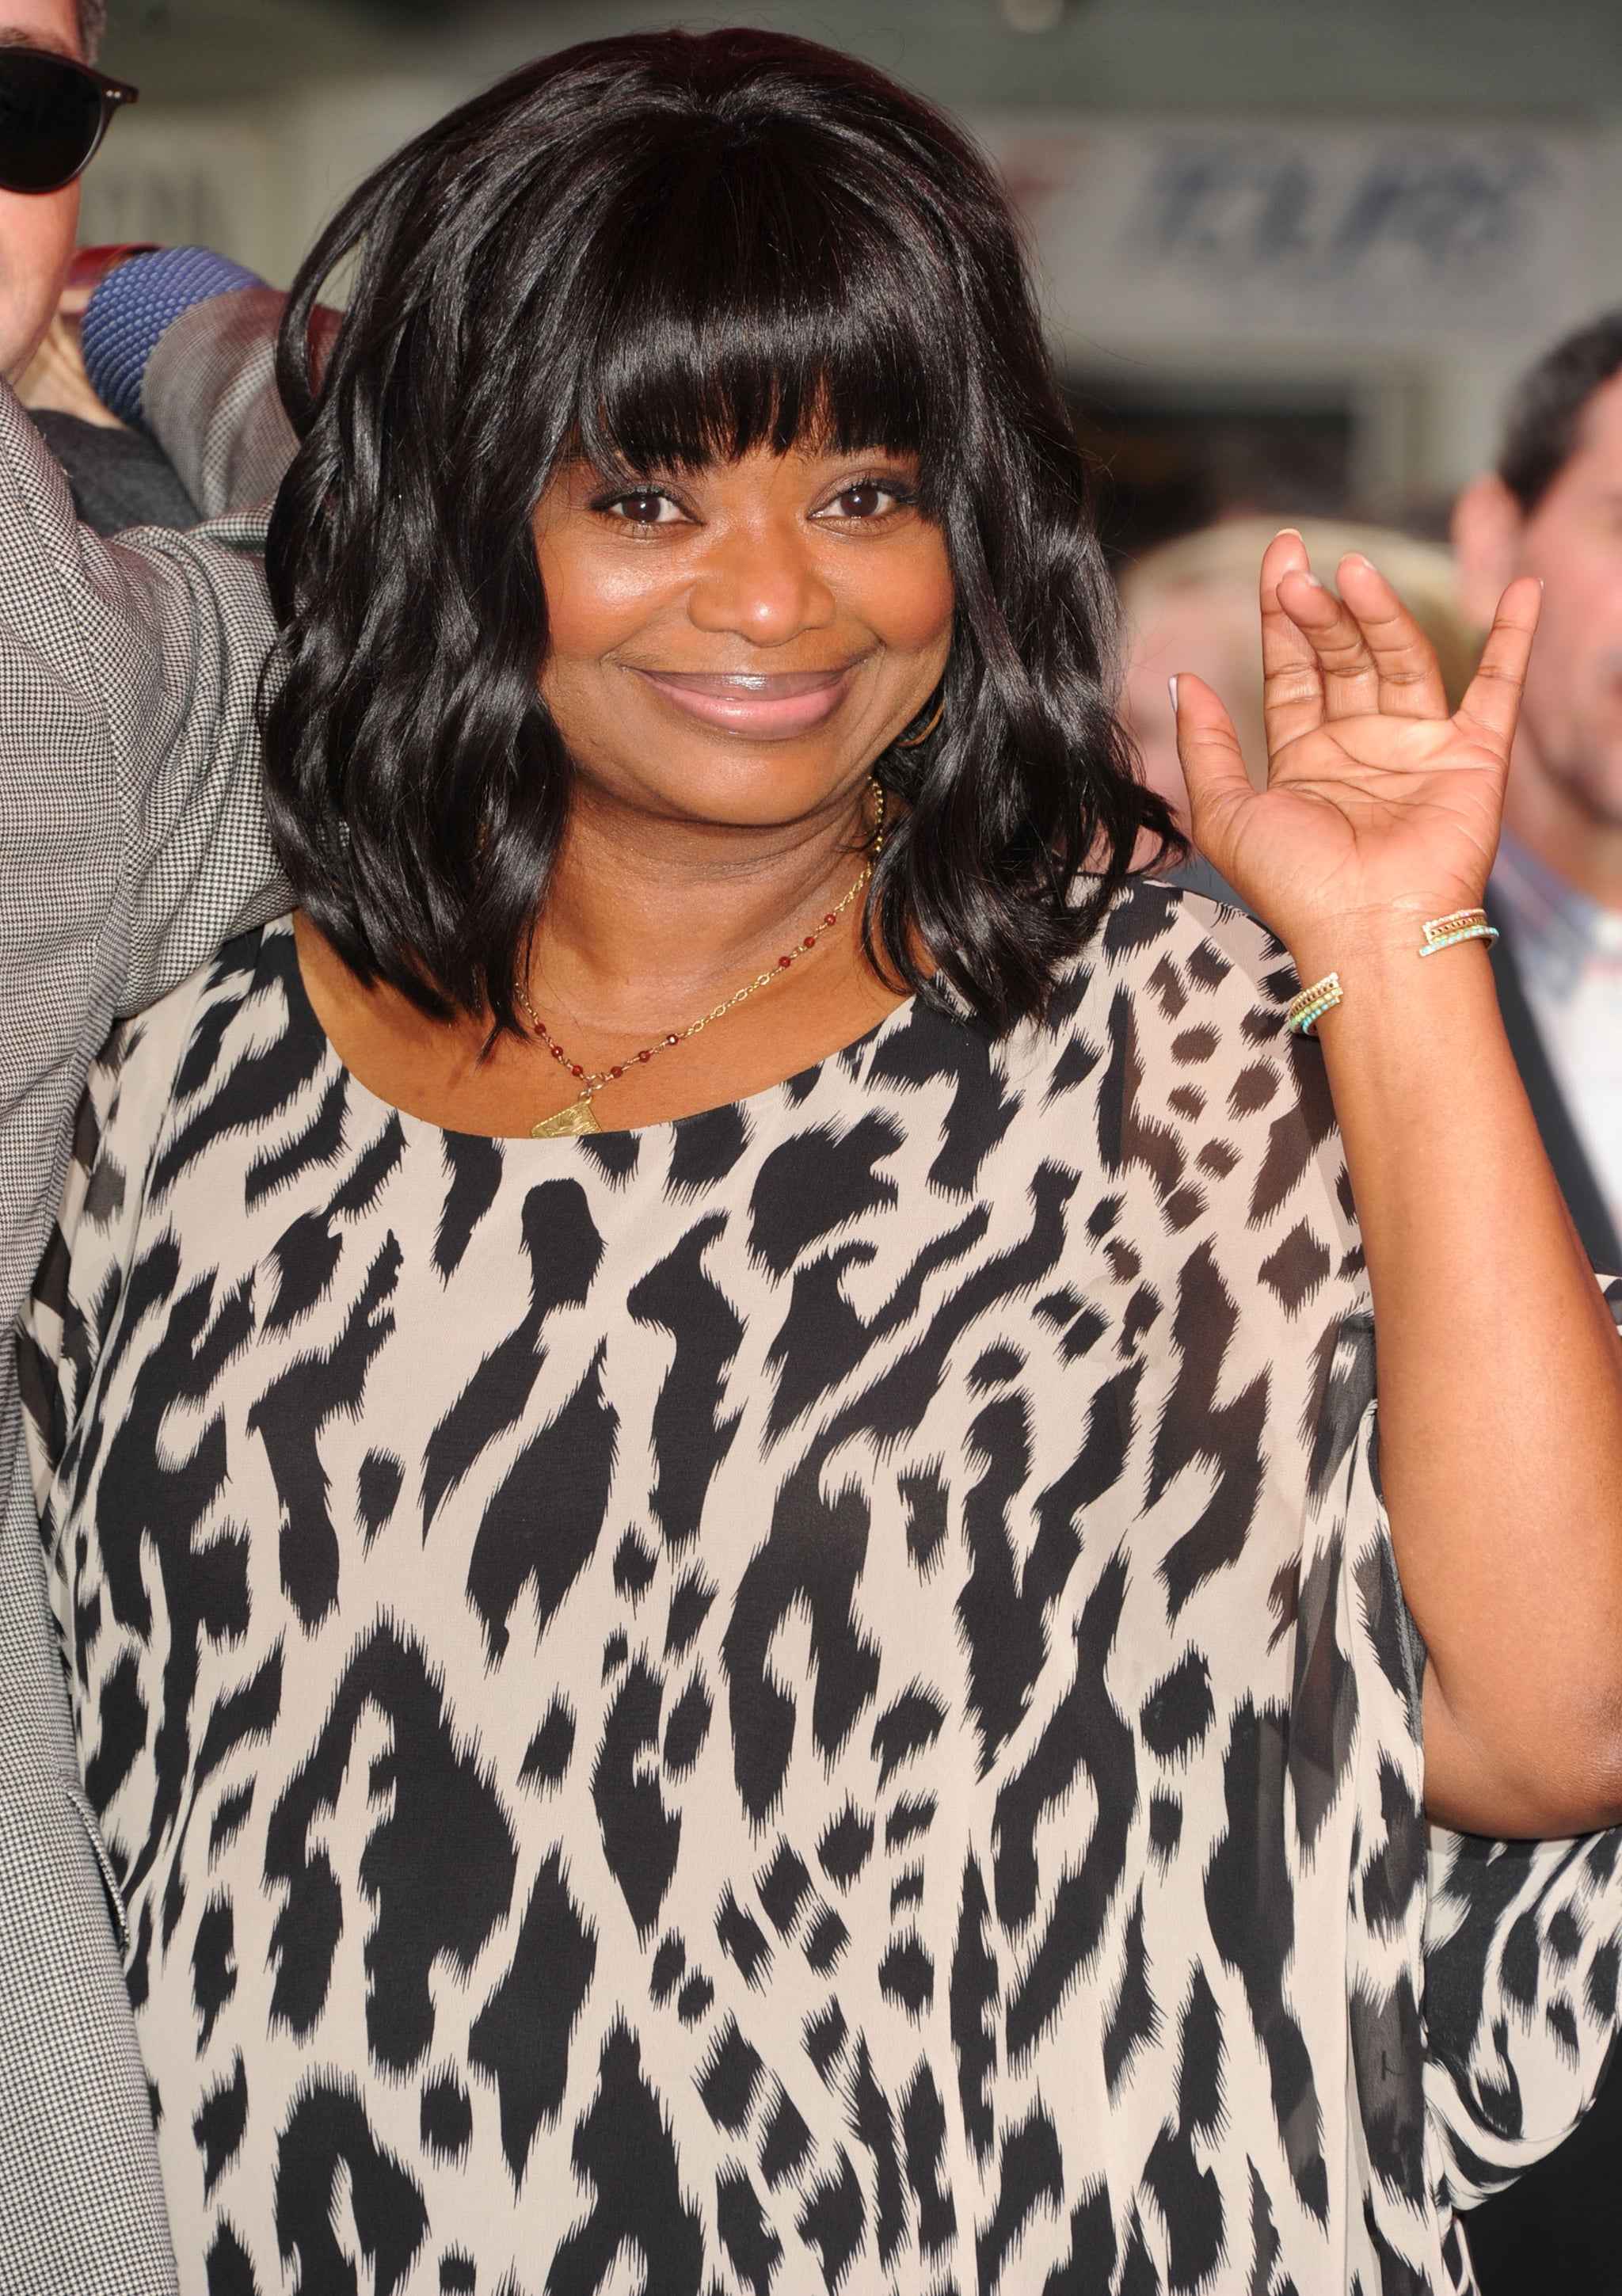 Octavia Spencer gave a wave when she arrived at TCL Chinese Theatre.